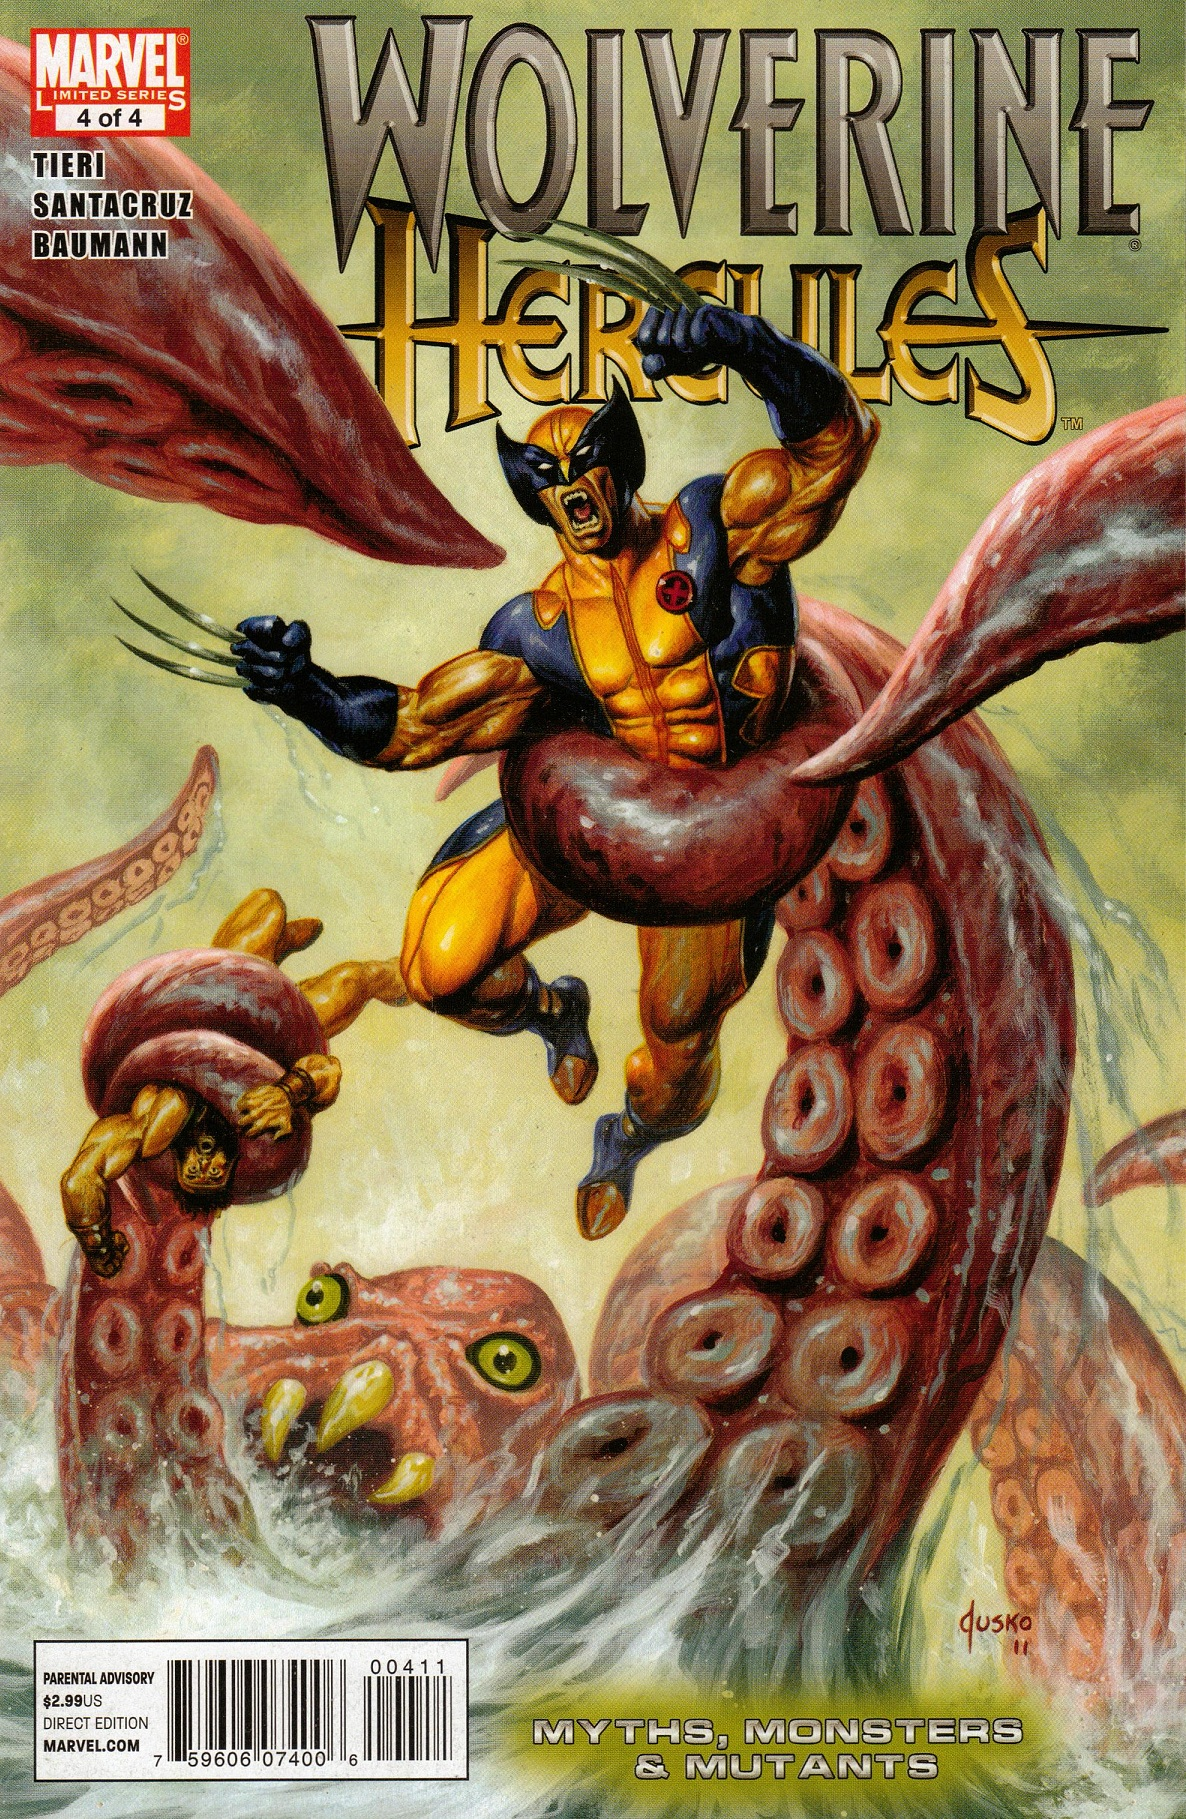 Wolverine/Hercules: Myths, Monsters & Mutants Vol 1 4